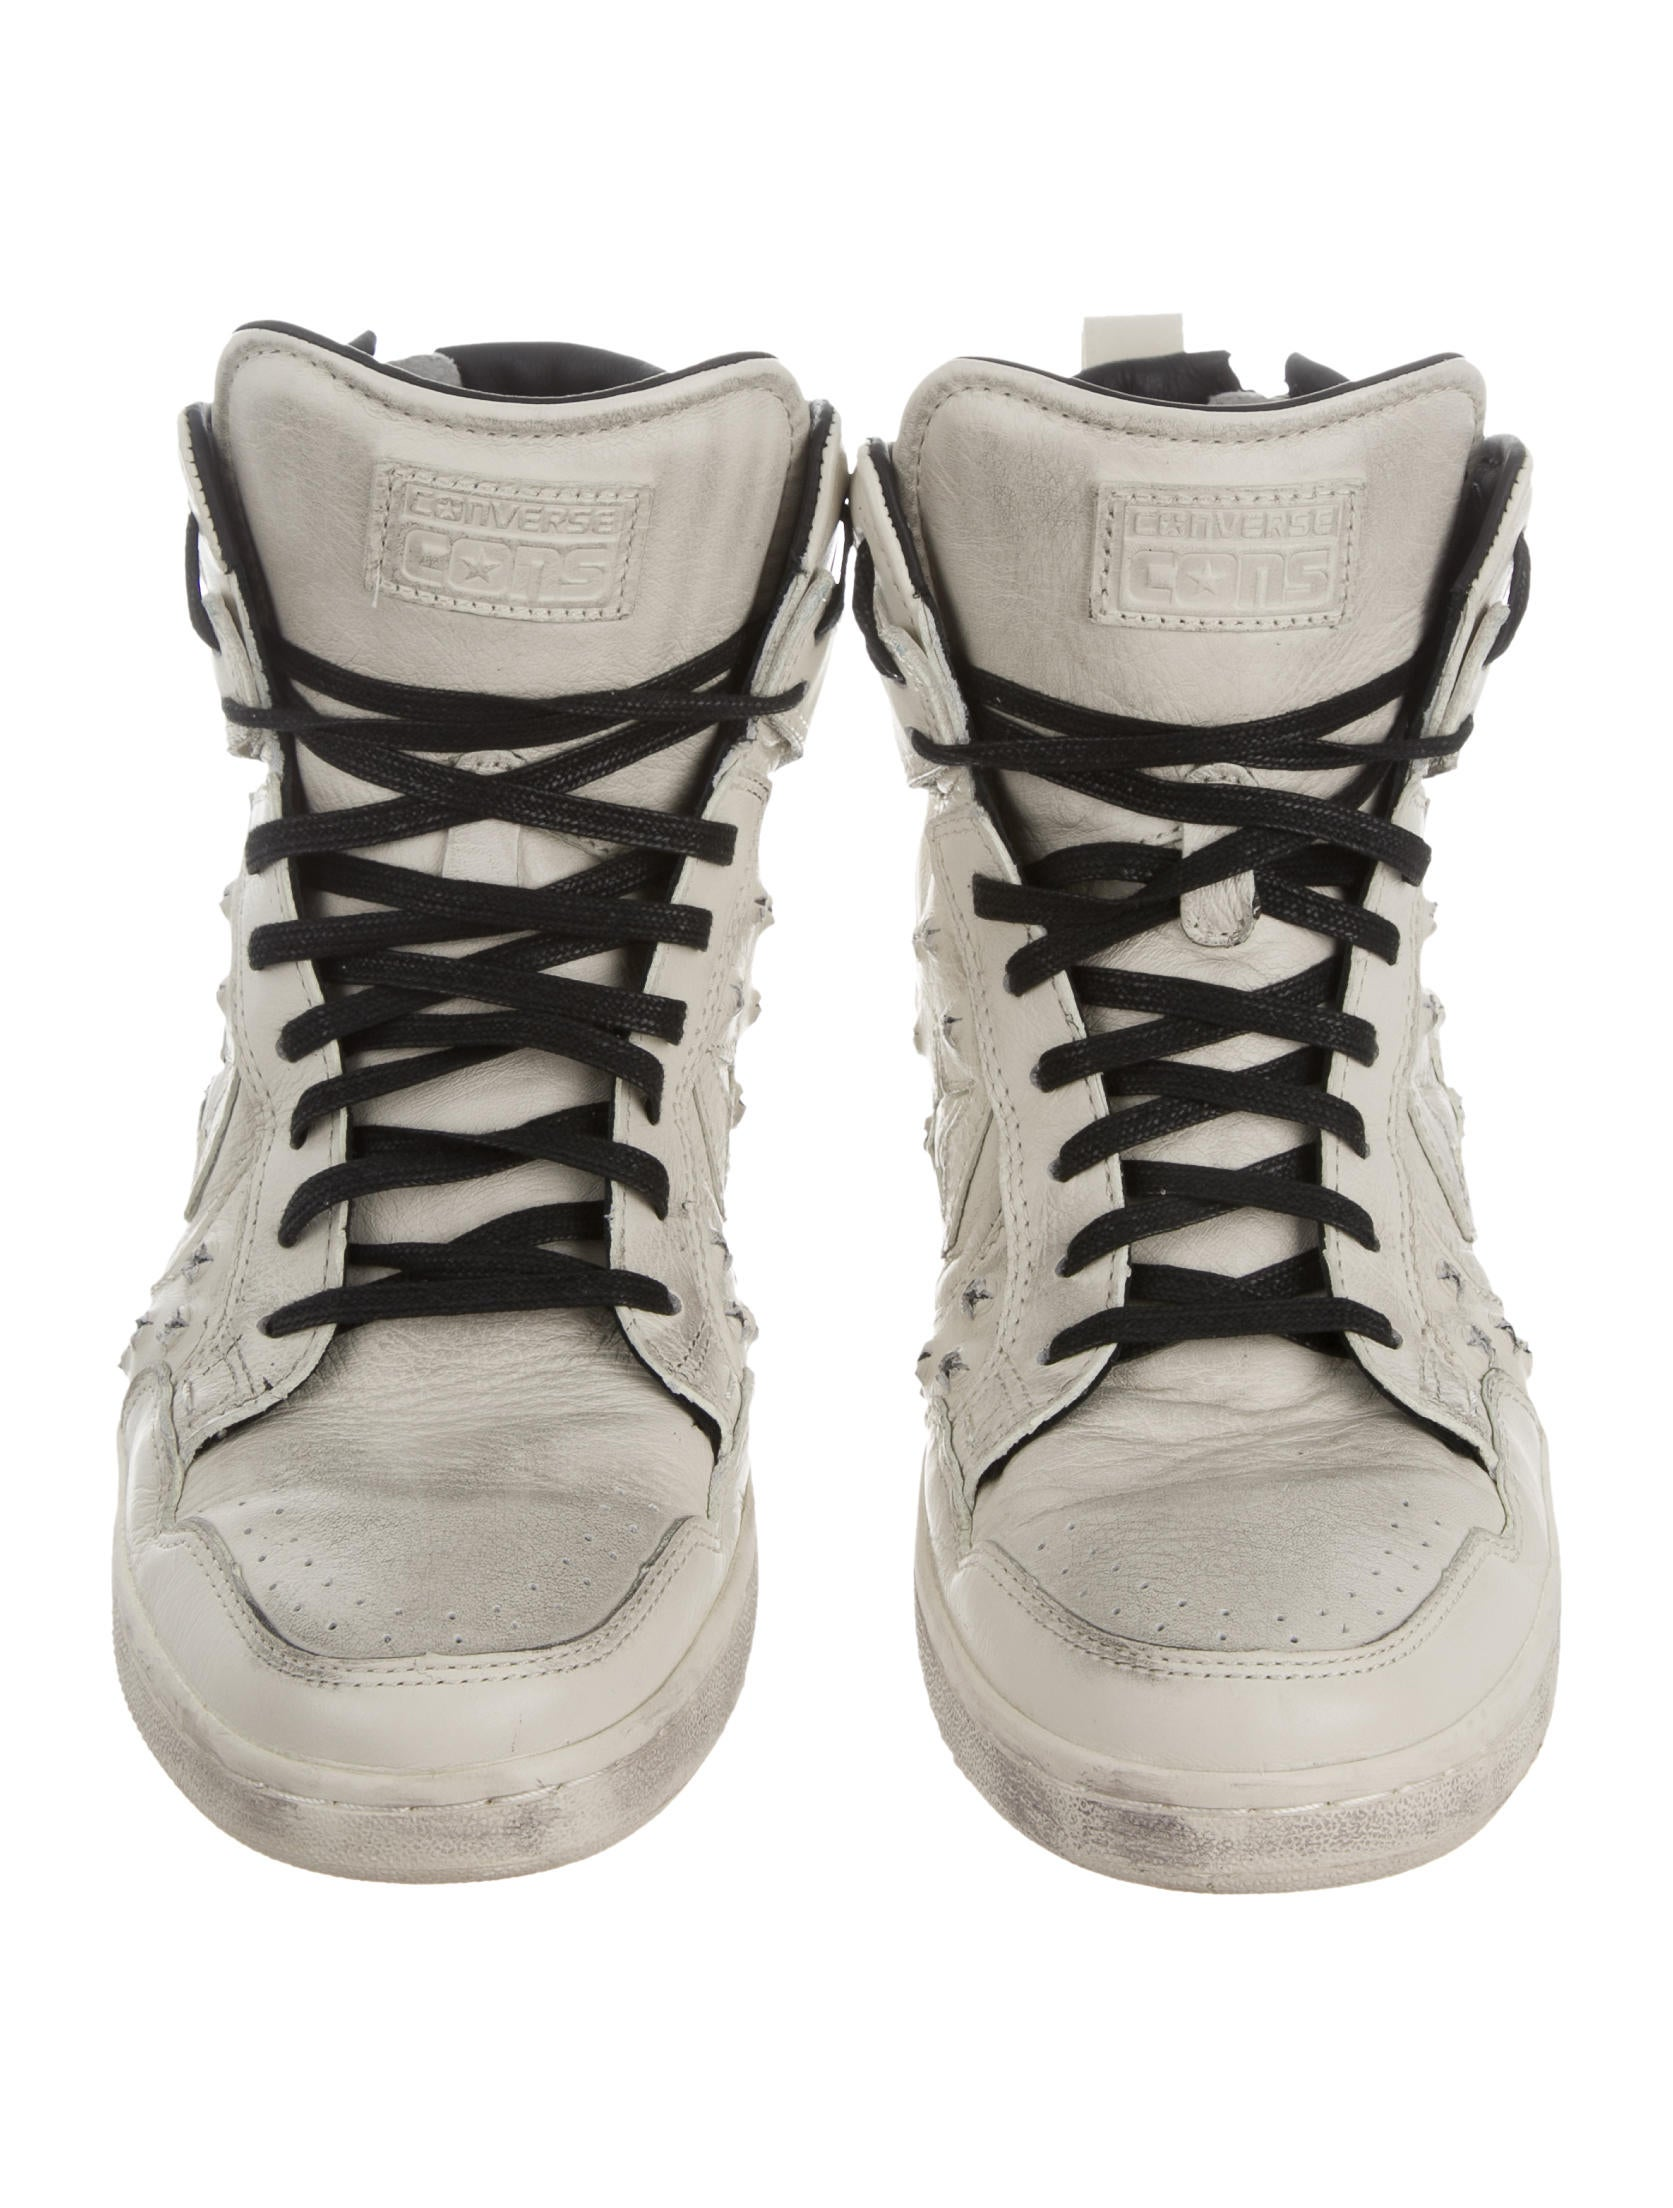 designer converse john varvatos 6w21  Weapon High-Top Sneakers w/ Tags